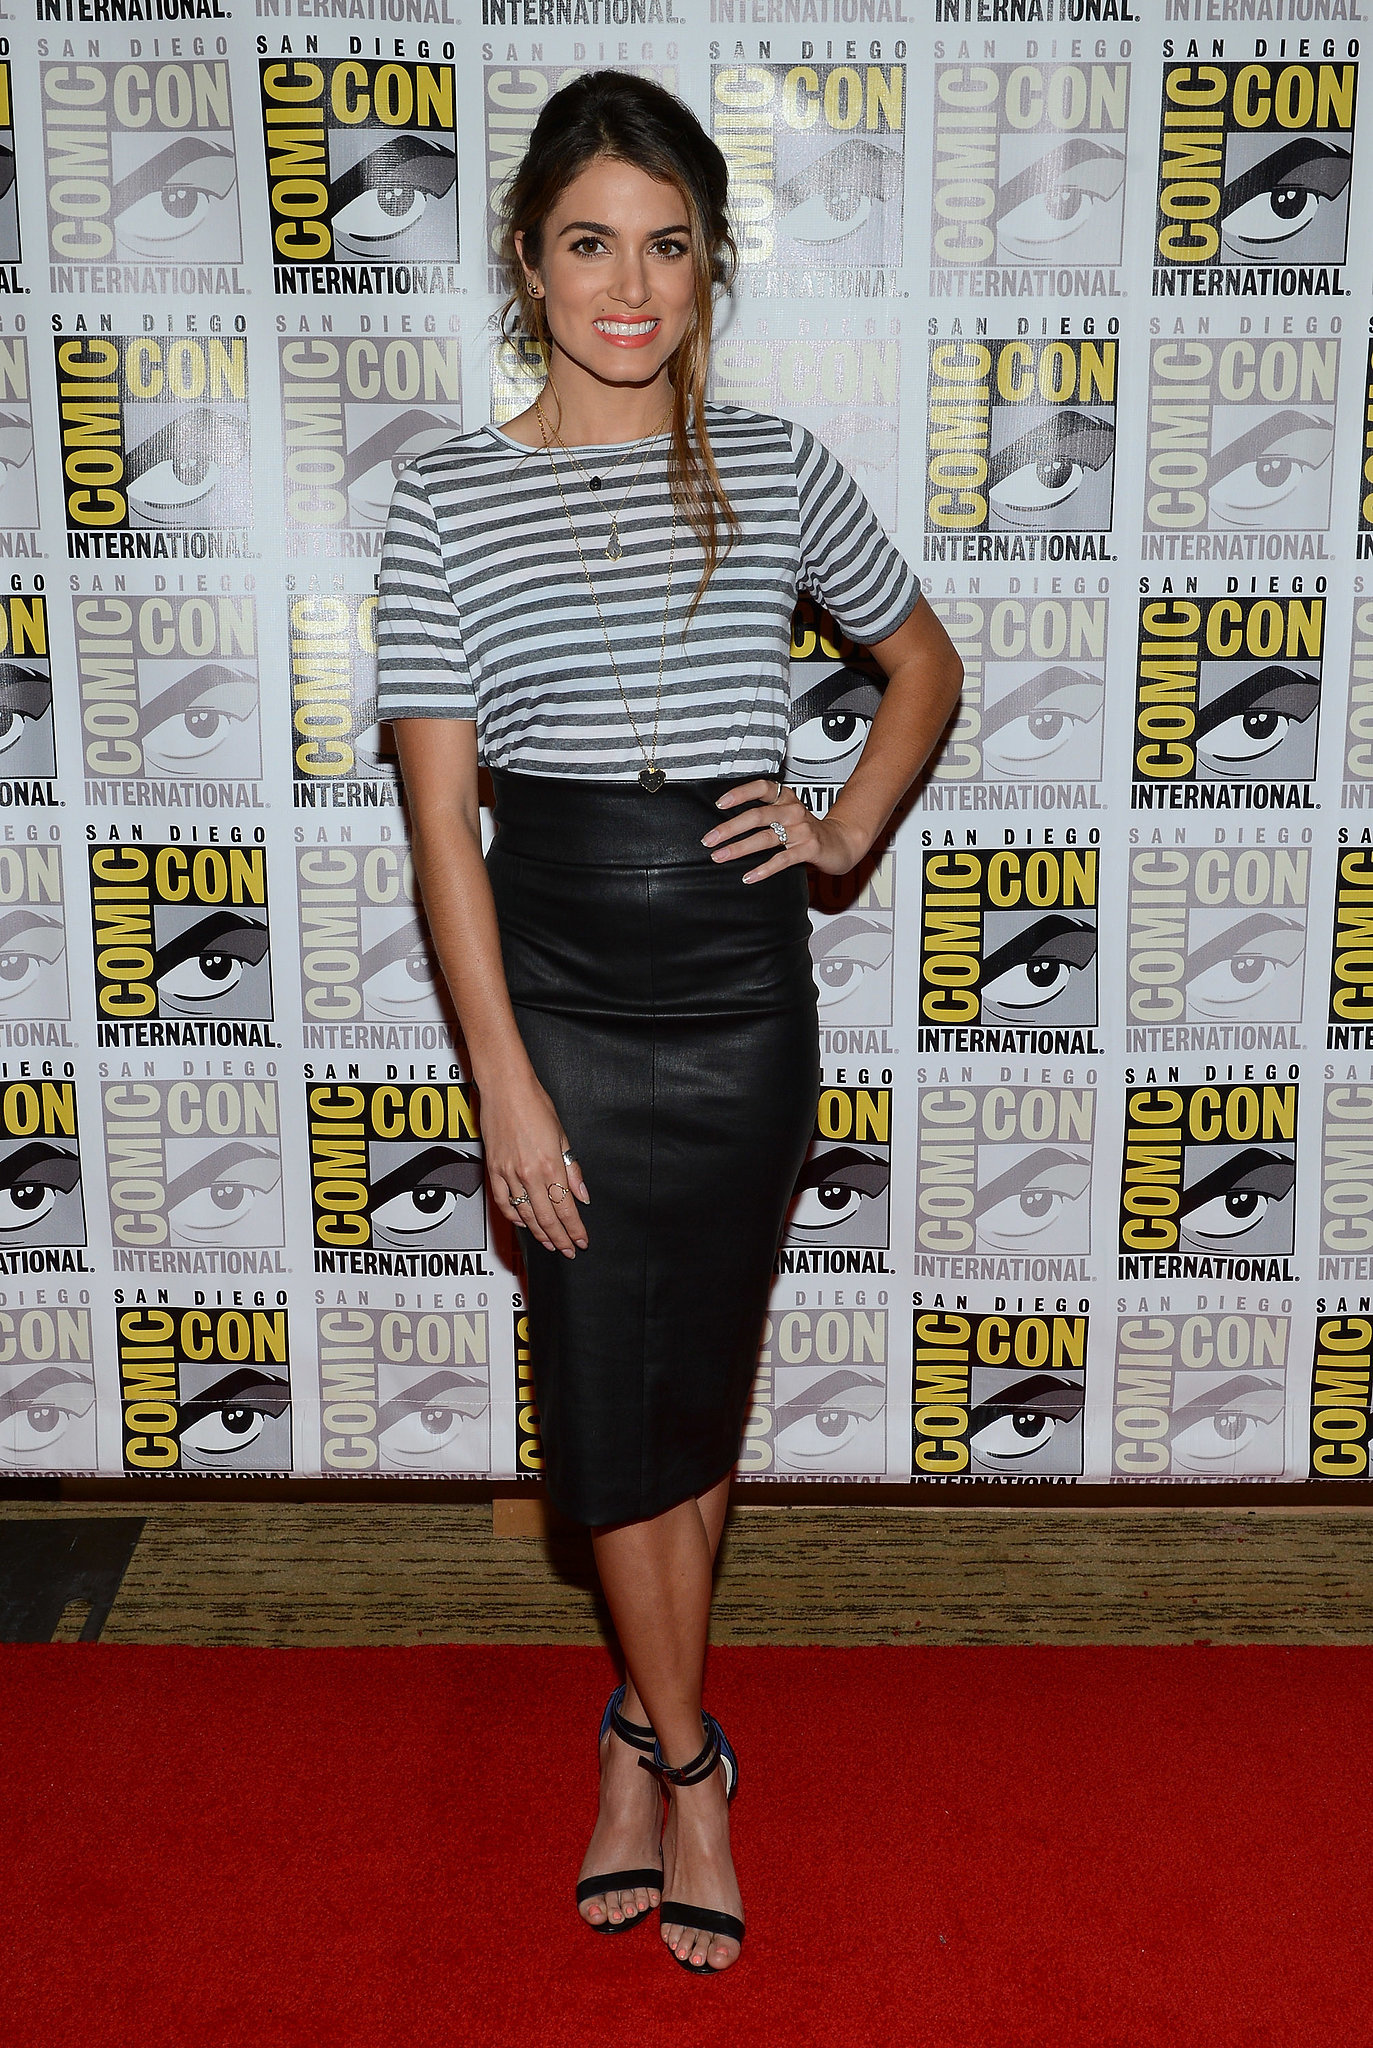 Nikki Reed For Us The Fourth Of July Only Means One Thing Stars In Stripes Popsugar Fashion